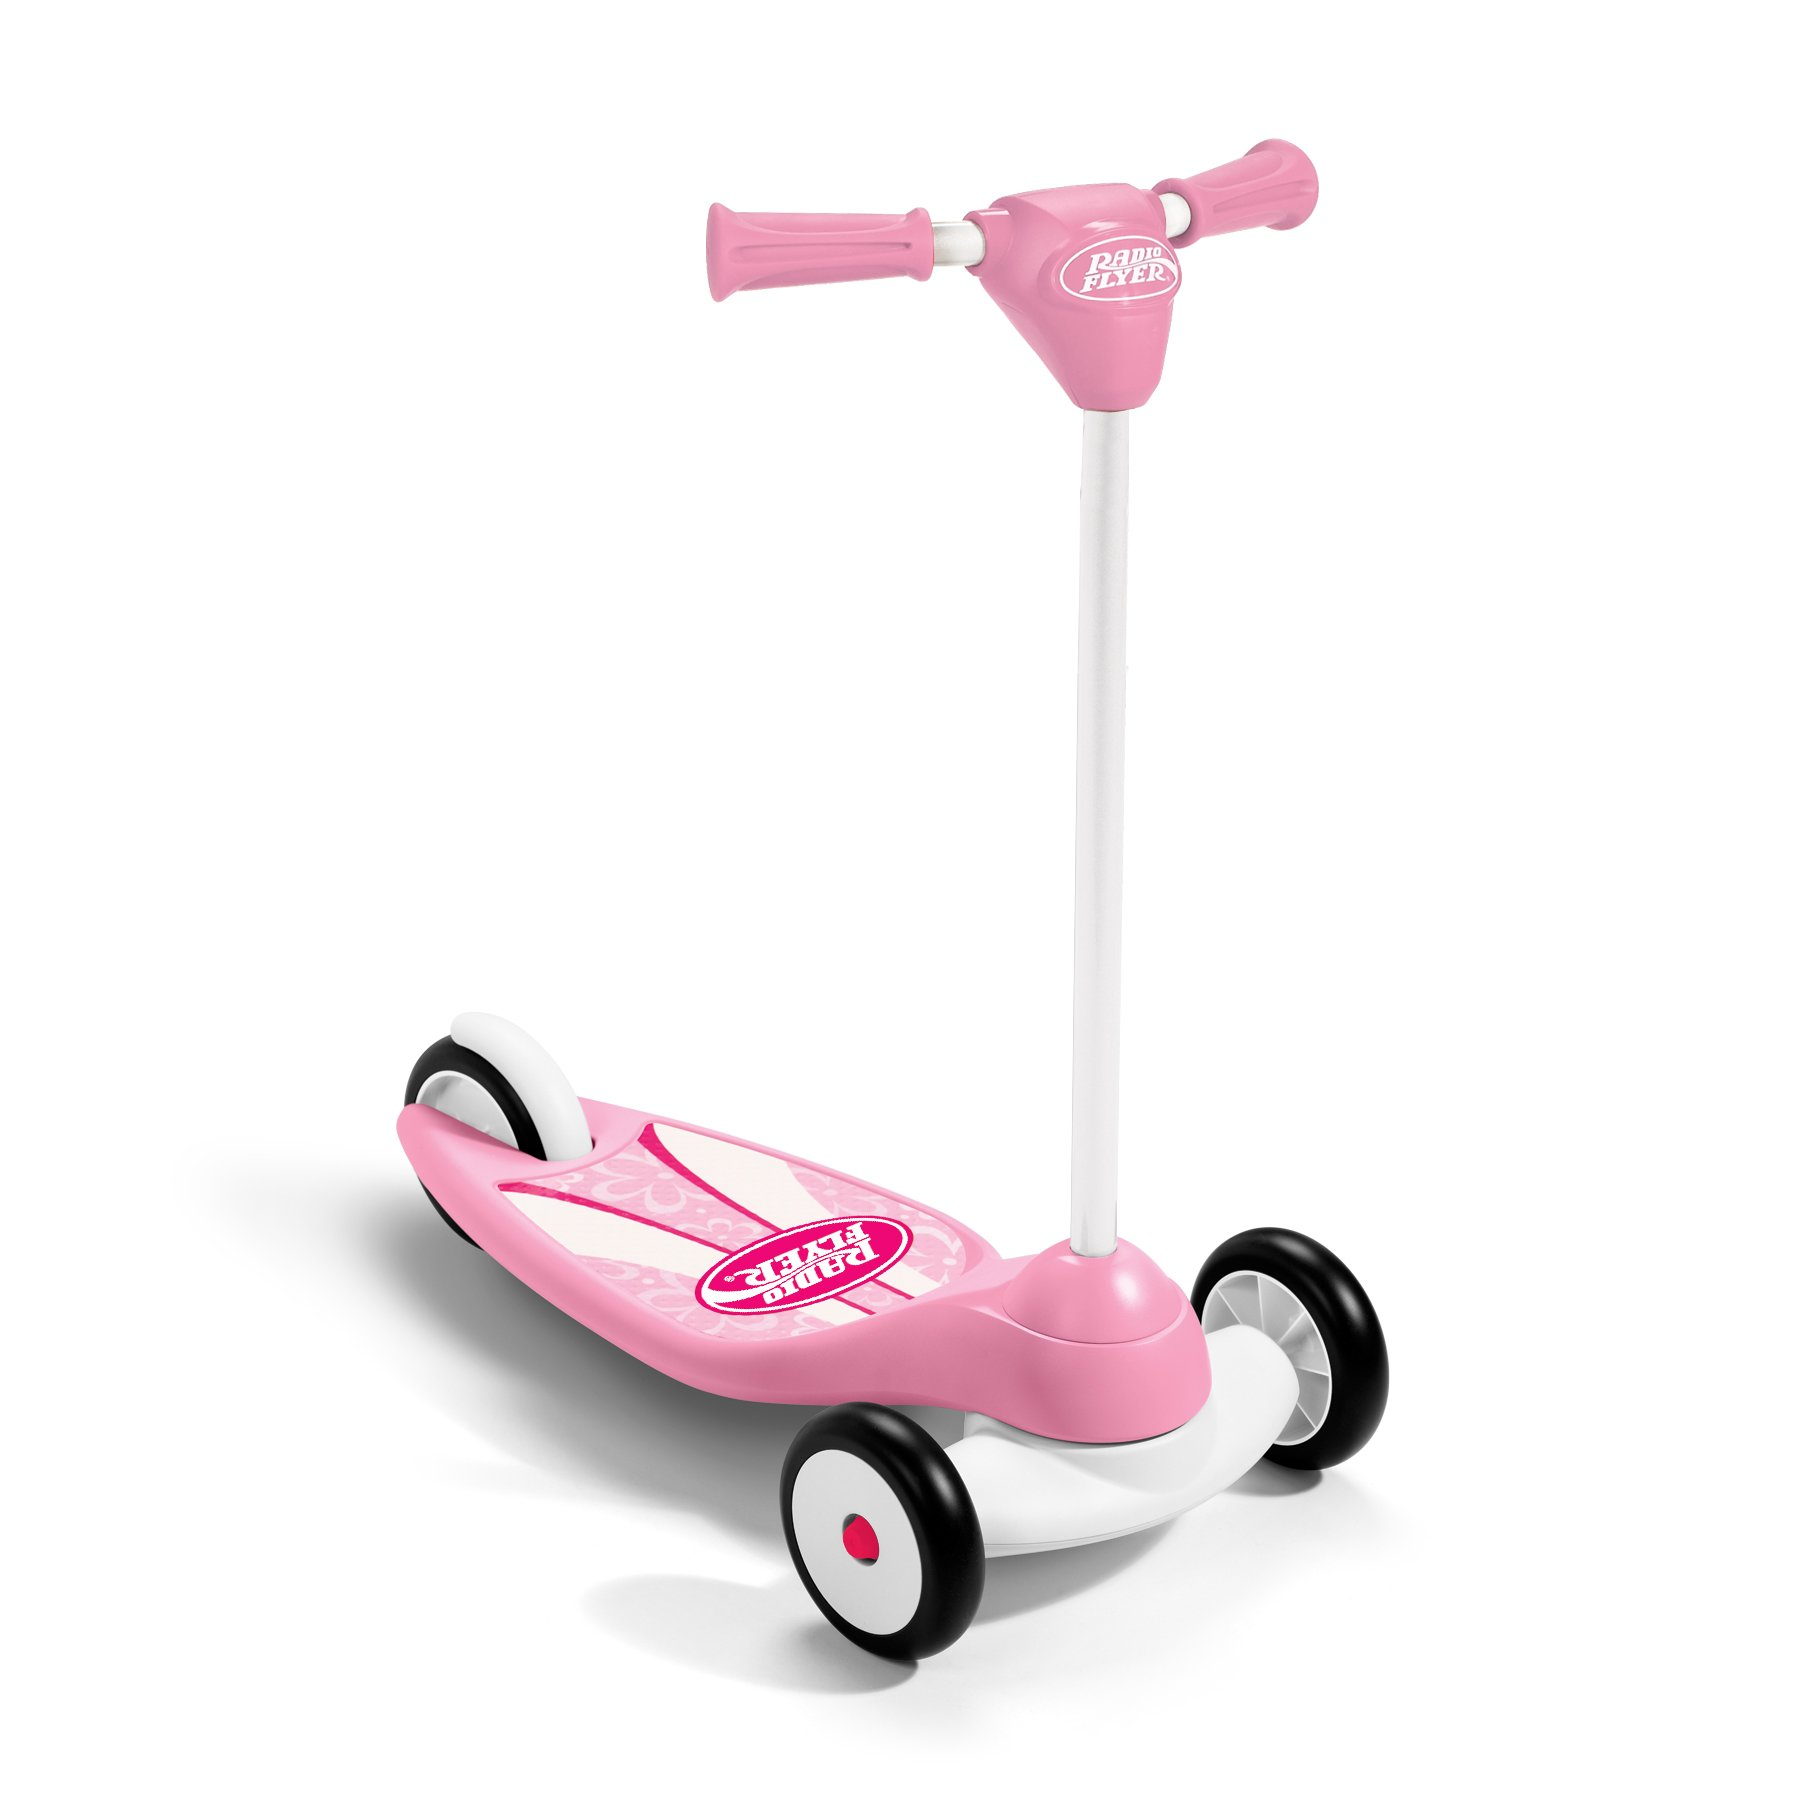 Radio Flyer 97176 1st Scooter (Pink) by Radio Flyer